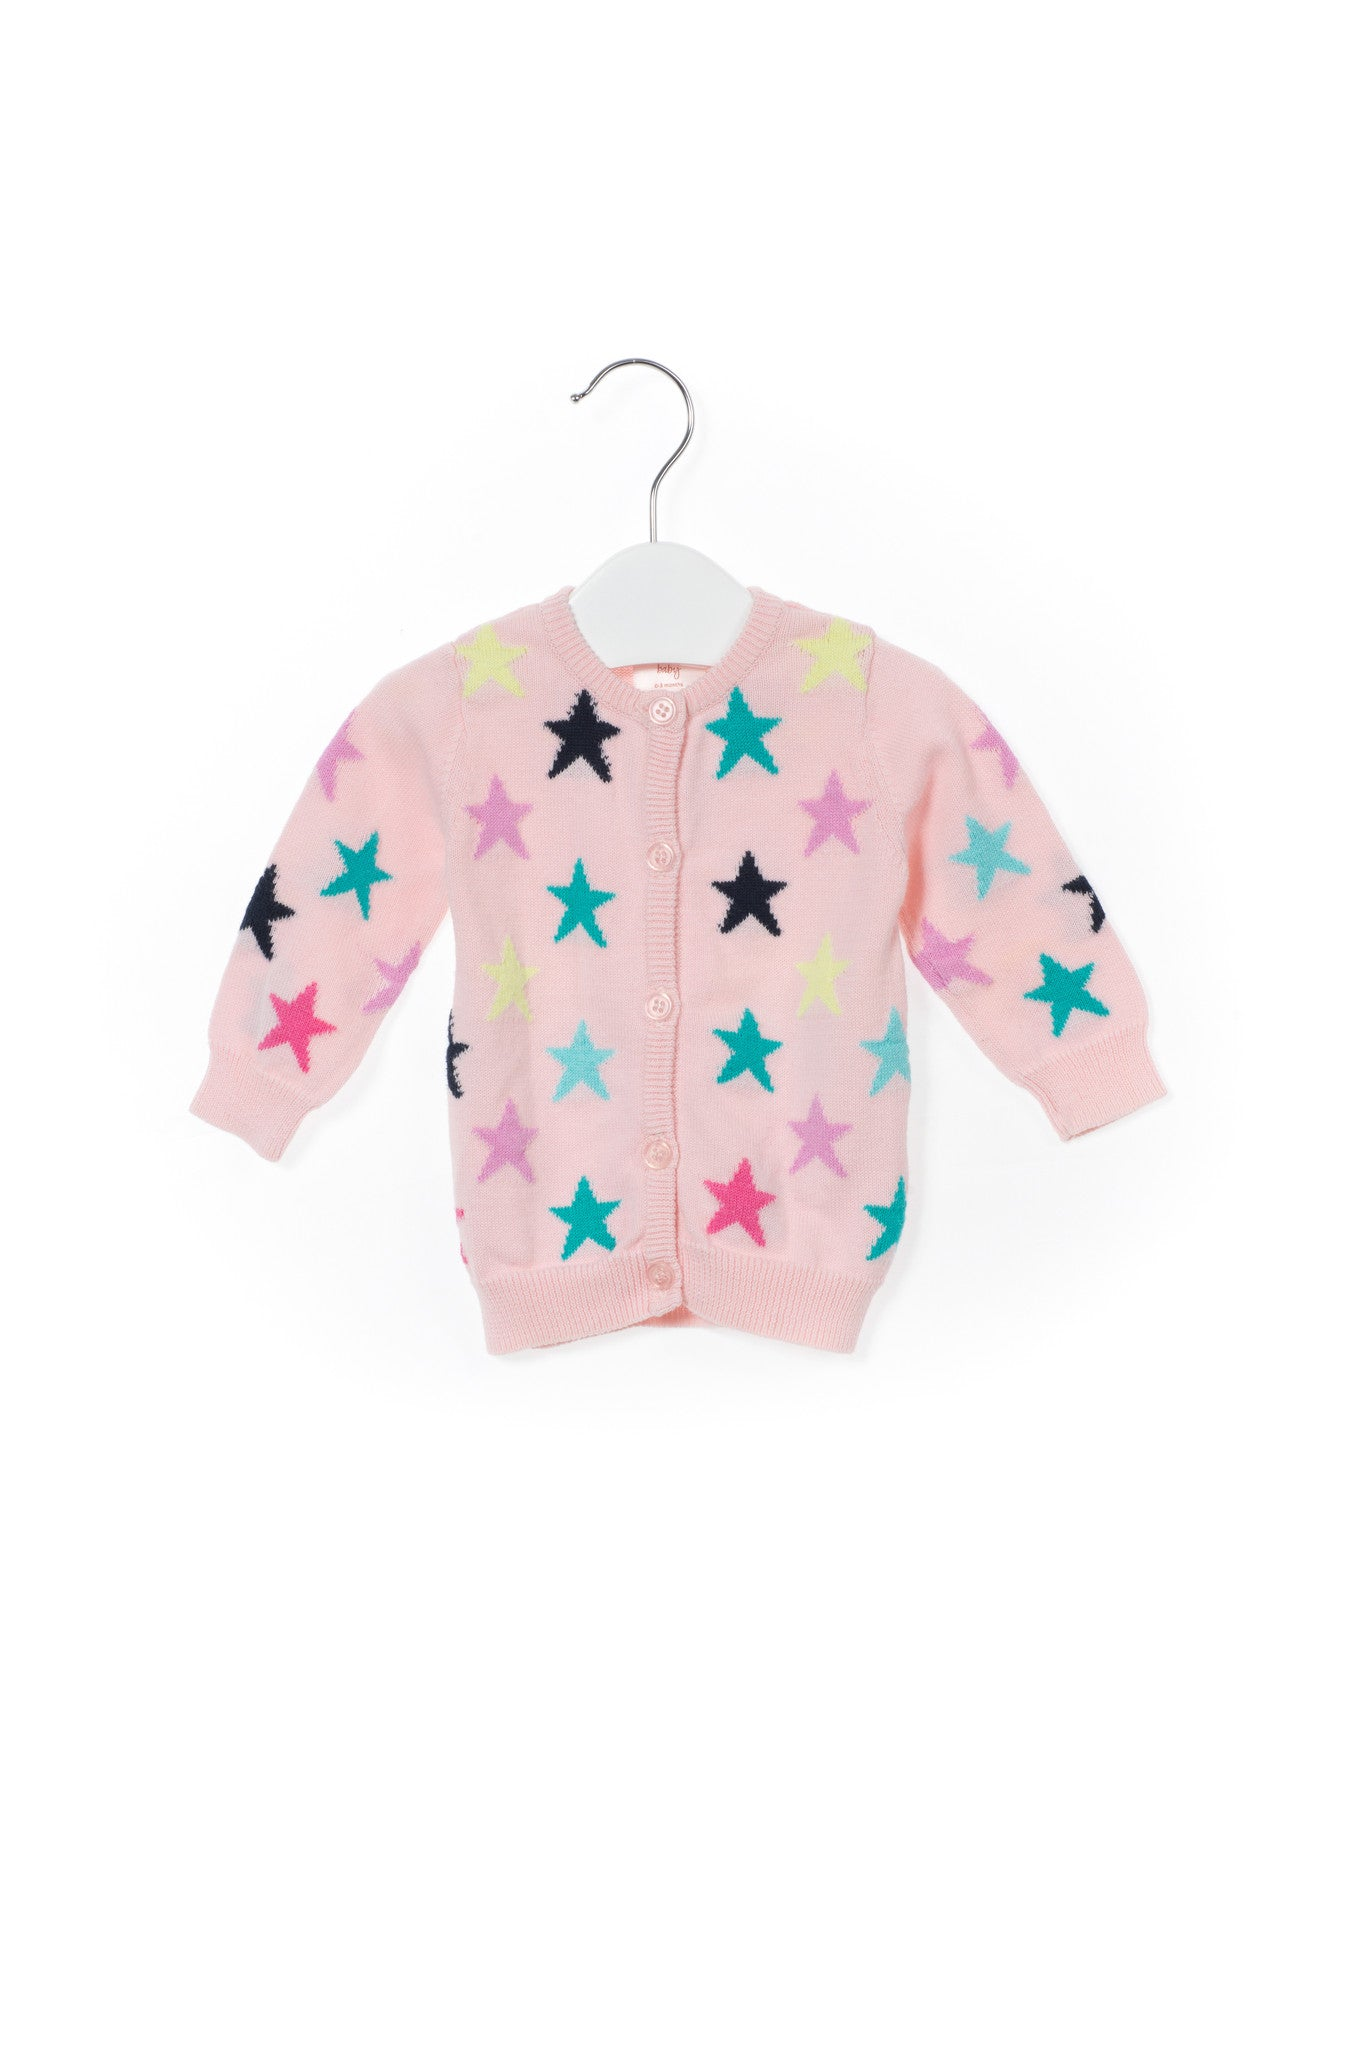 Cardigan 0-3M, Seed at Retykle - Online Baby & Kids Clothing Up to 90% Off